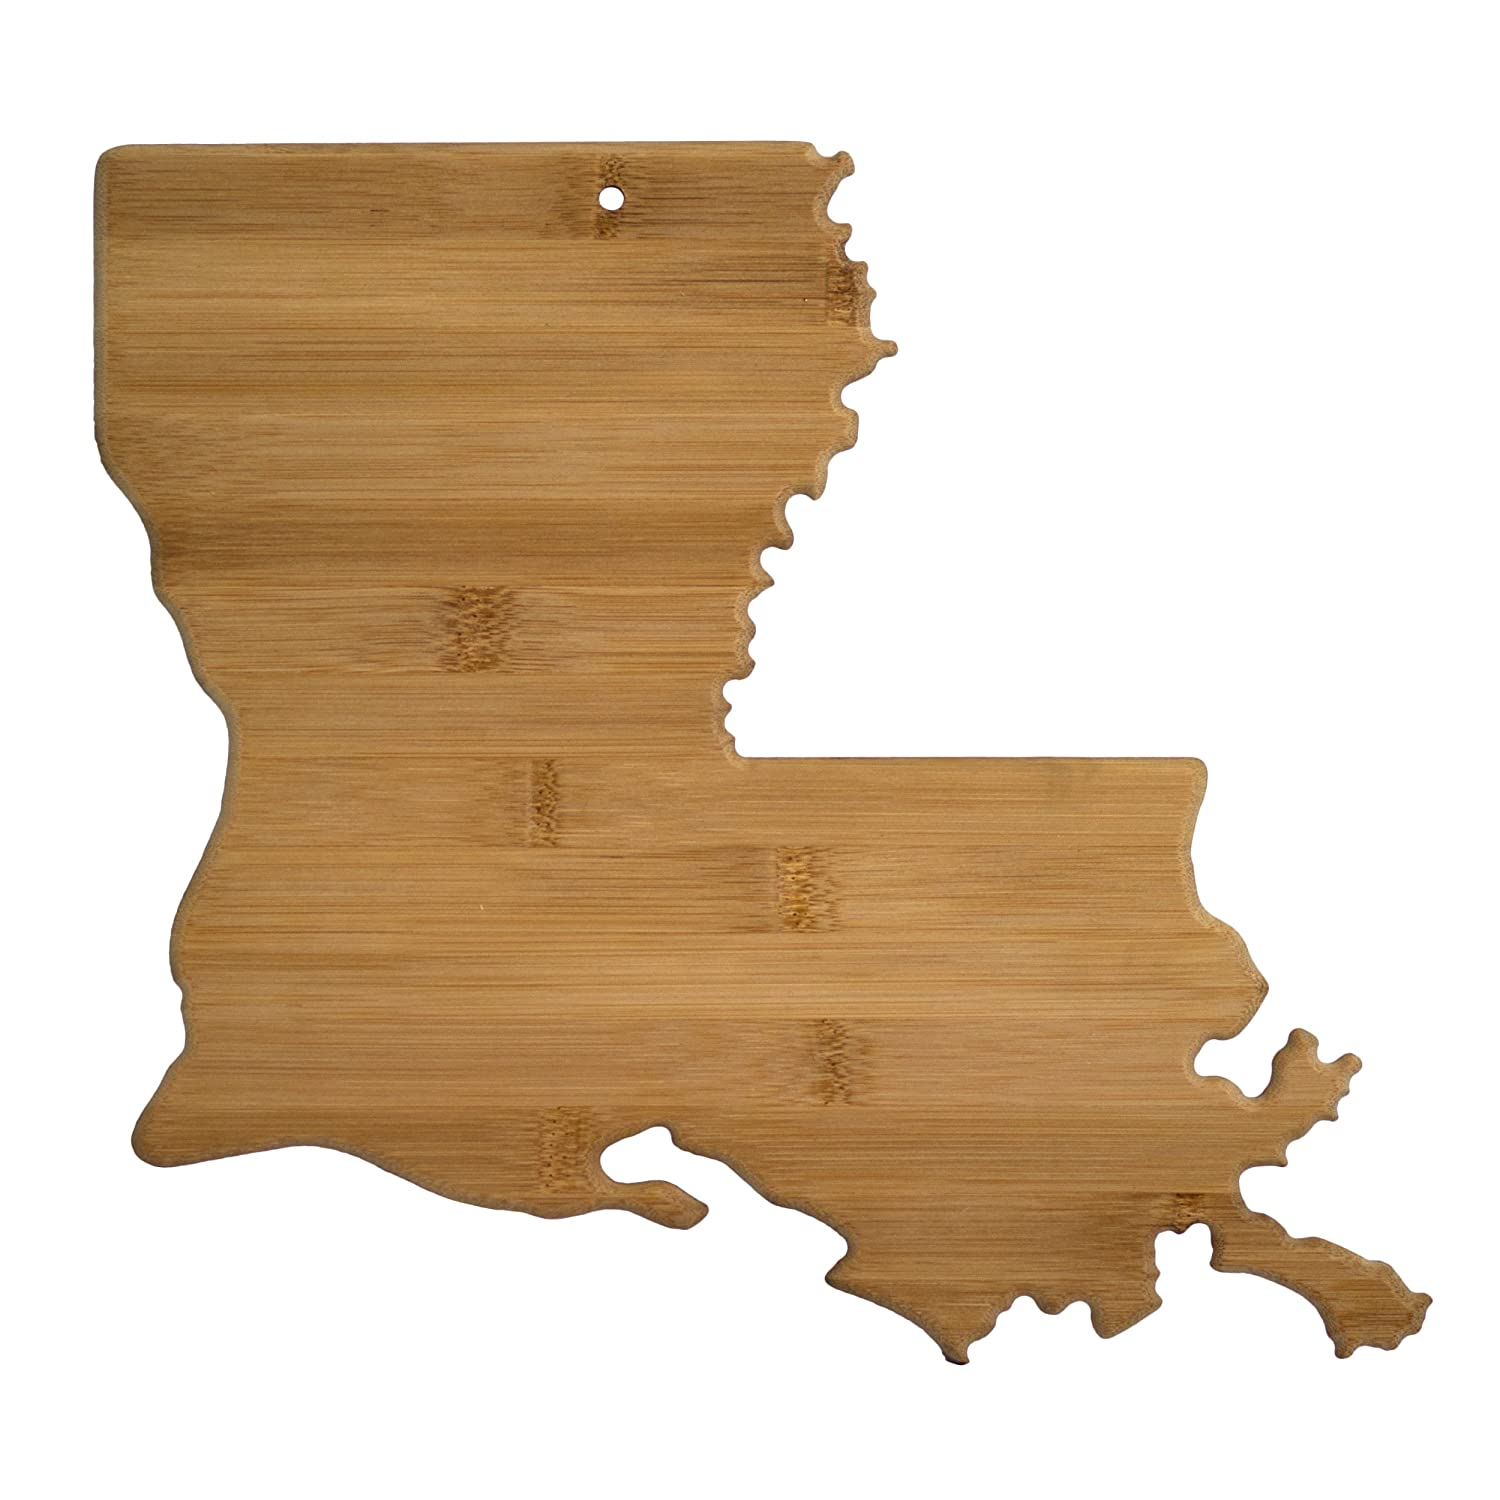 Totally Bamboo Louisiana State Shaped Bamboo Serving and Cutting Board